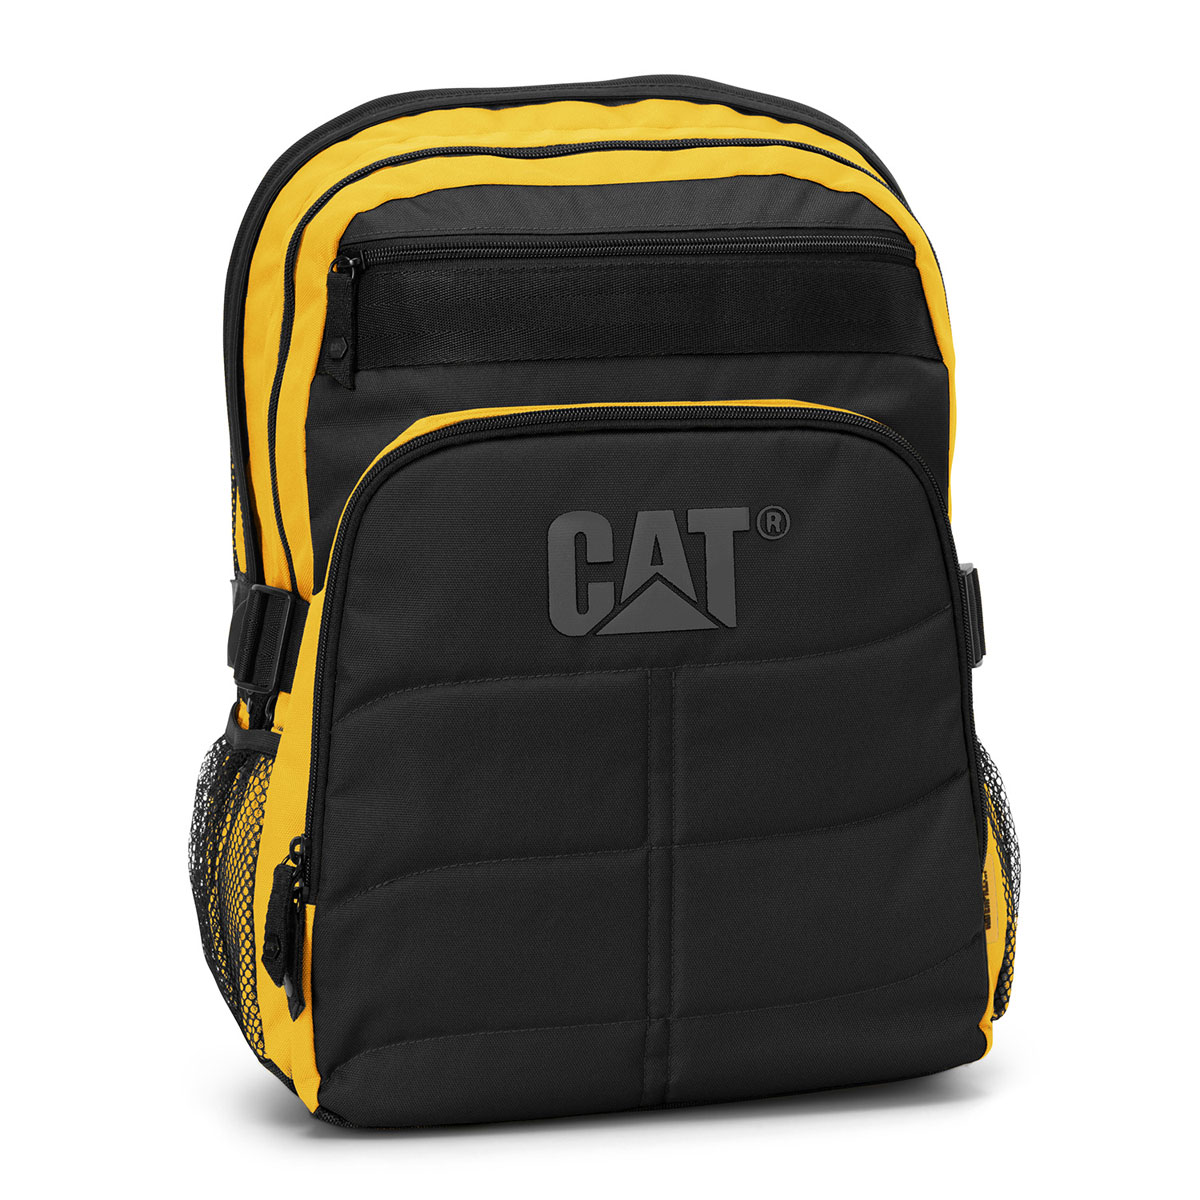 caterpillar cat brent noir jaune sac sacoche housse cat sur. Black Bedroom Furniture Sets. Home Design Ideas